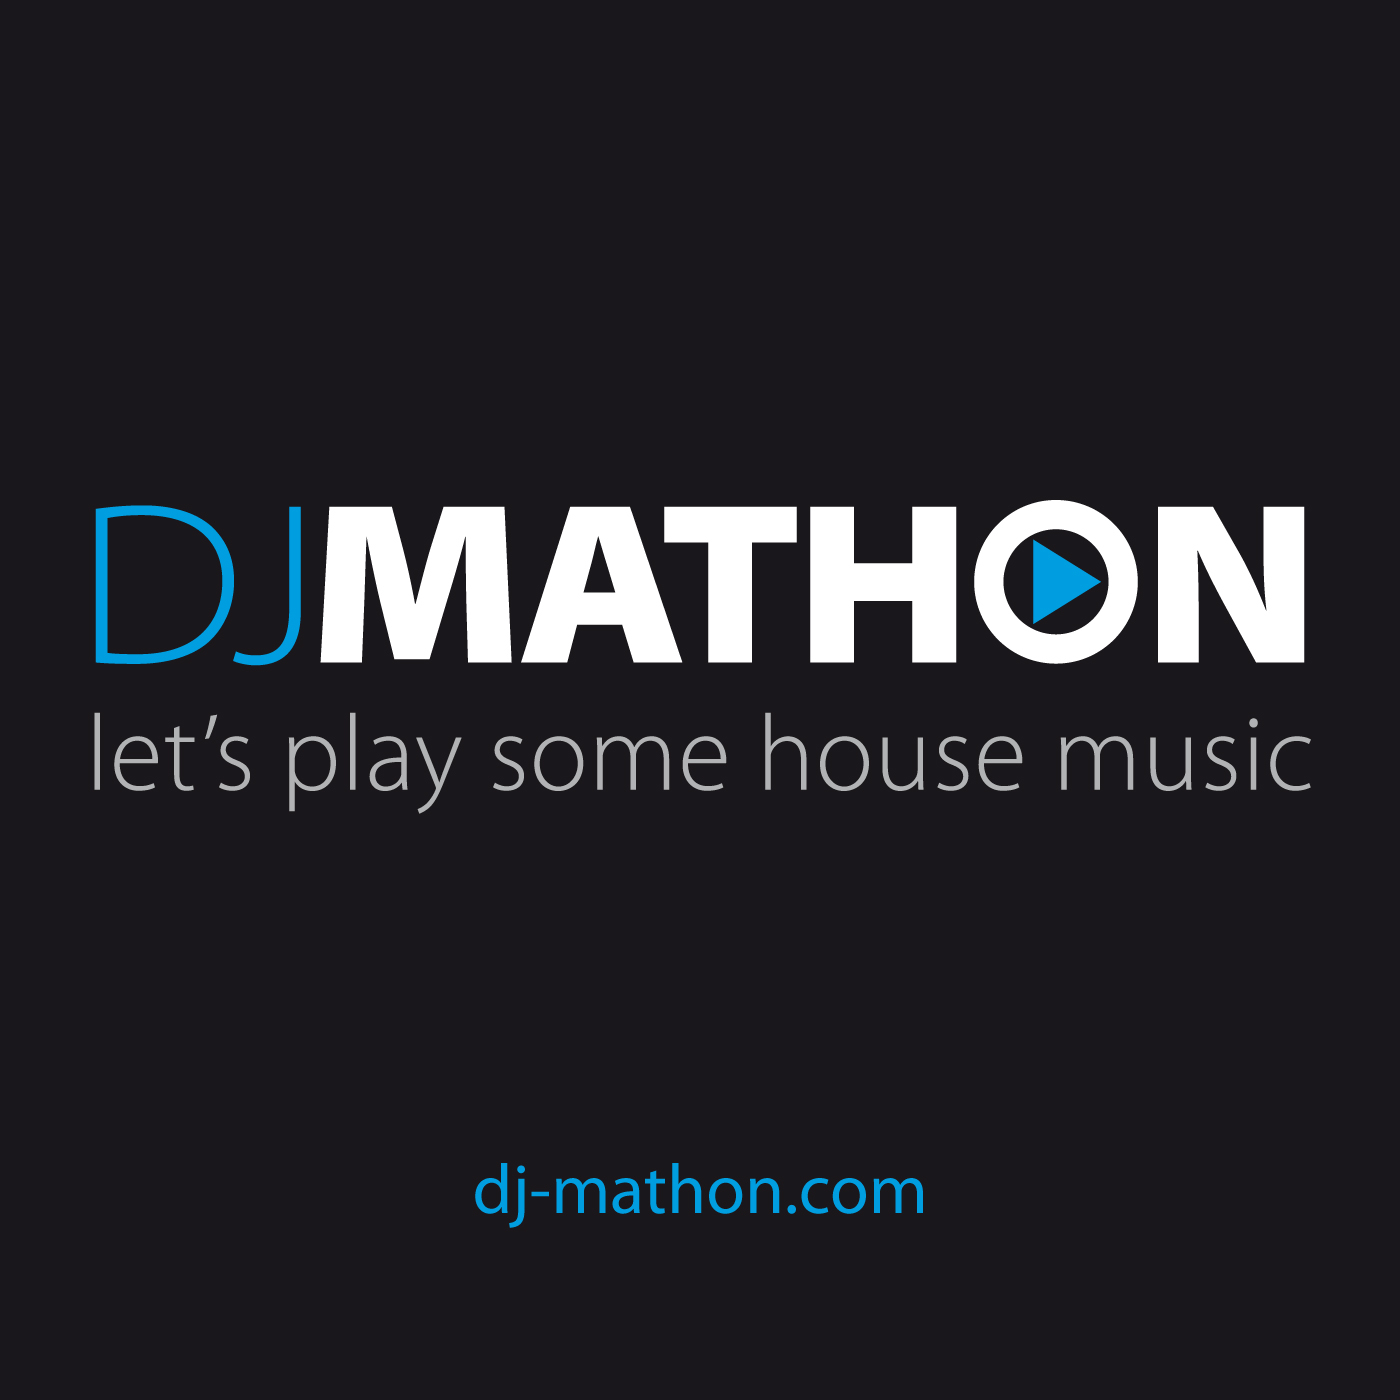 18 DJ-MATHON POEPLE FROM IBIZA